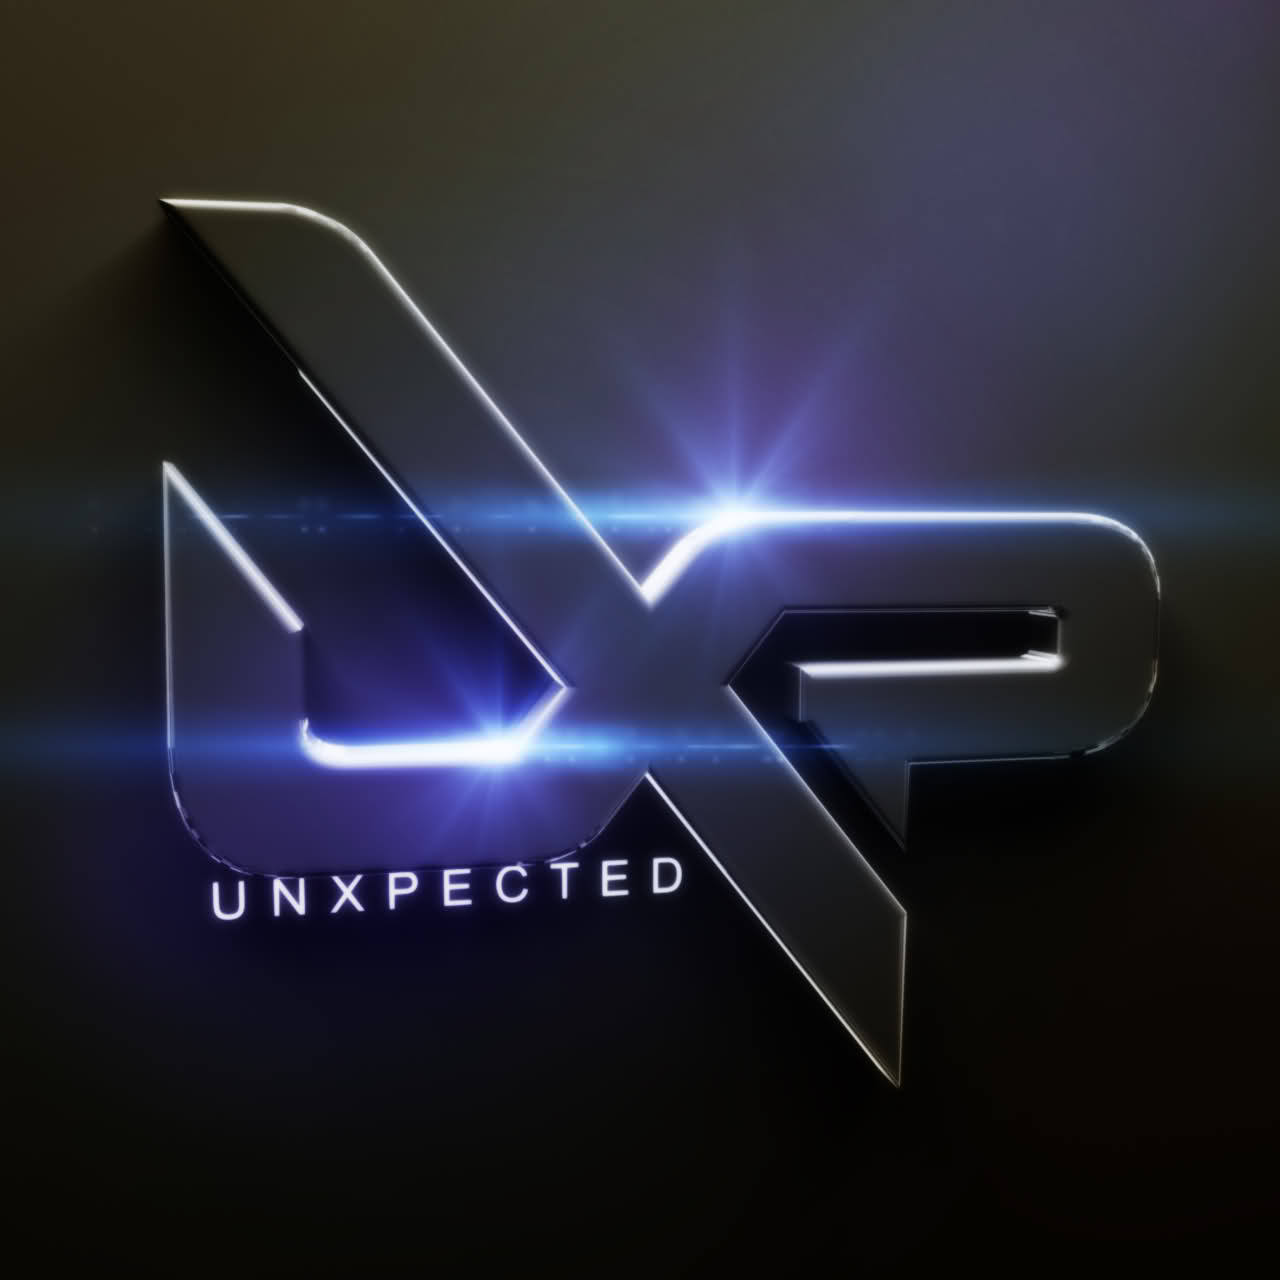 Team.unXpected